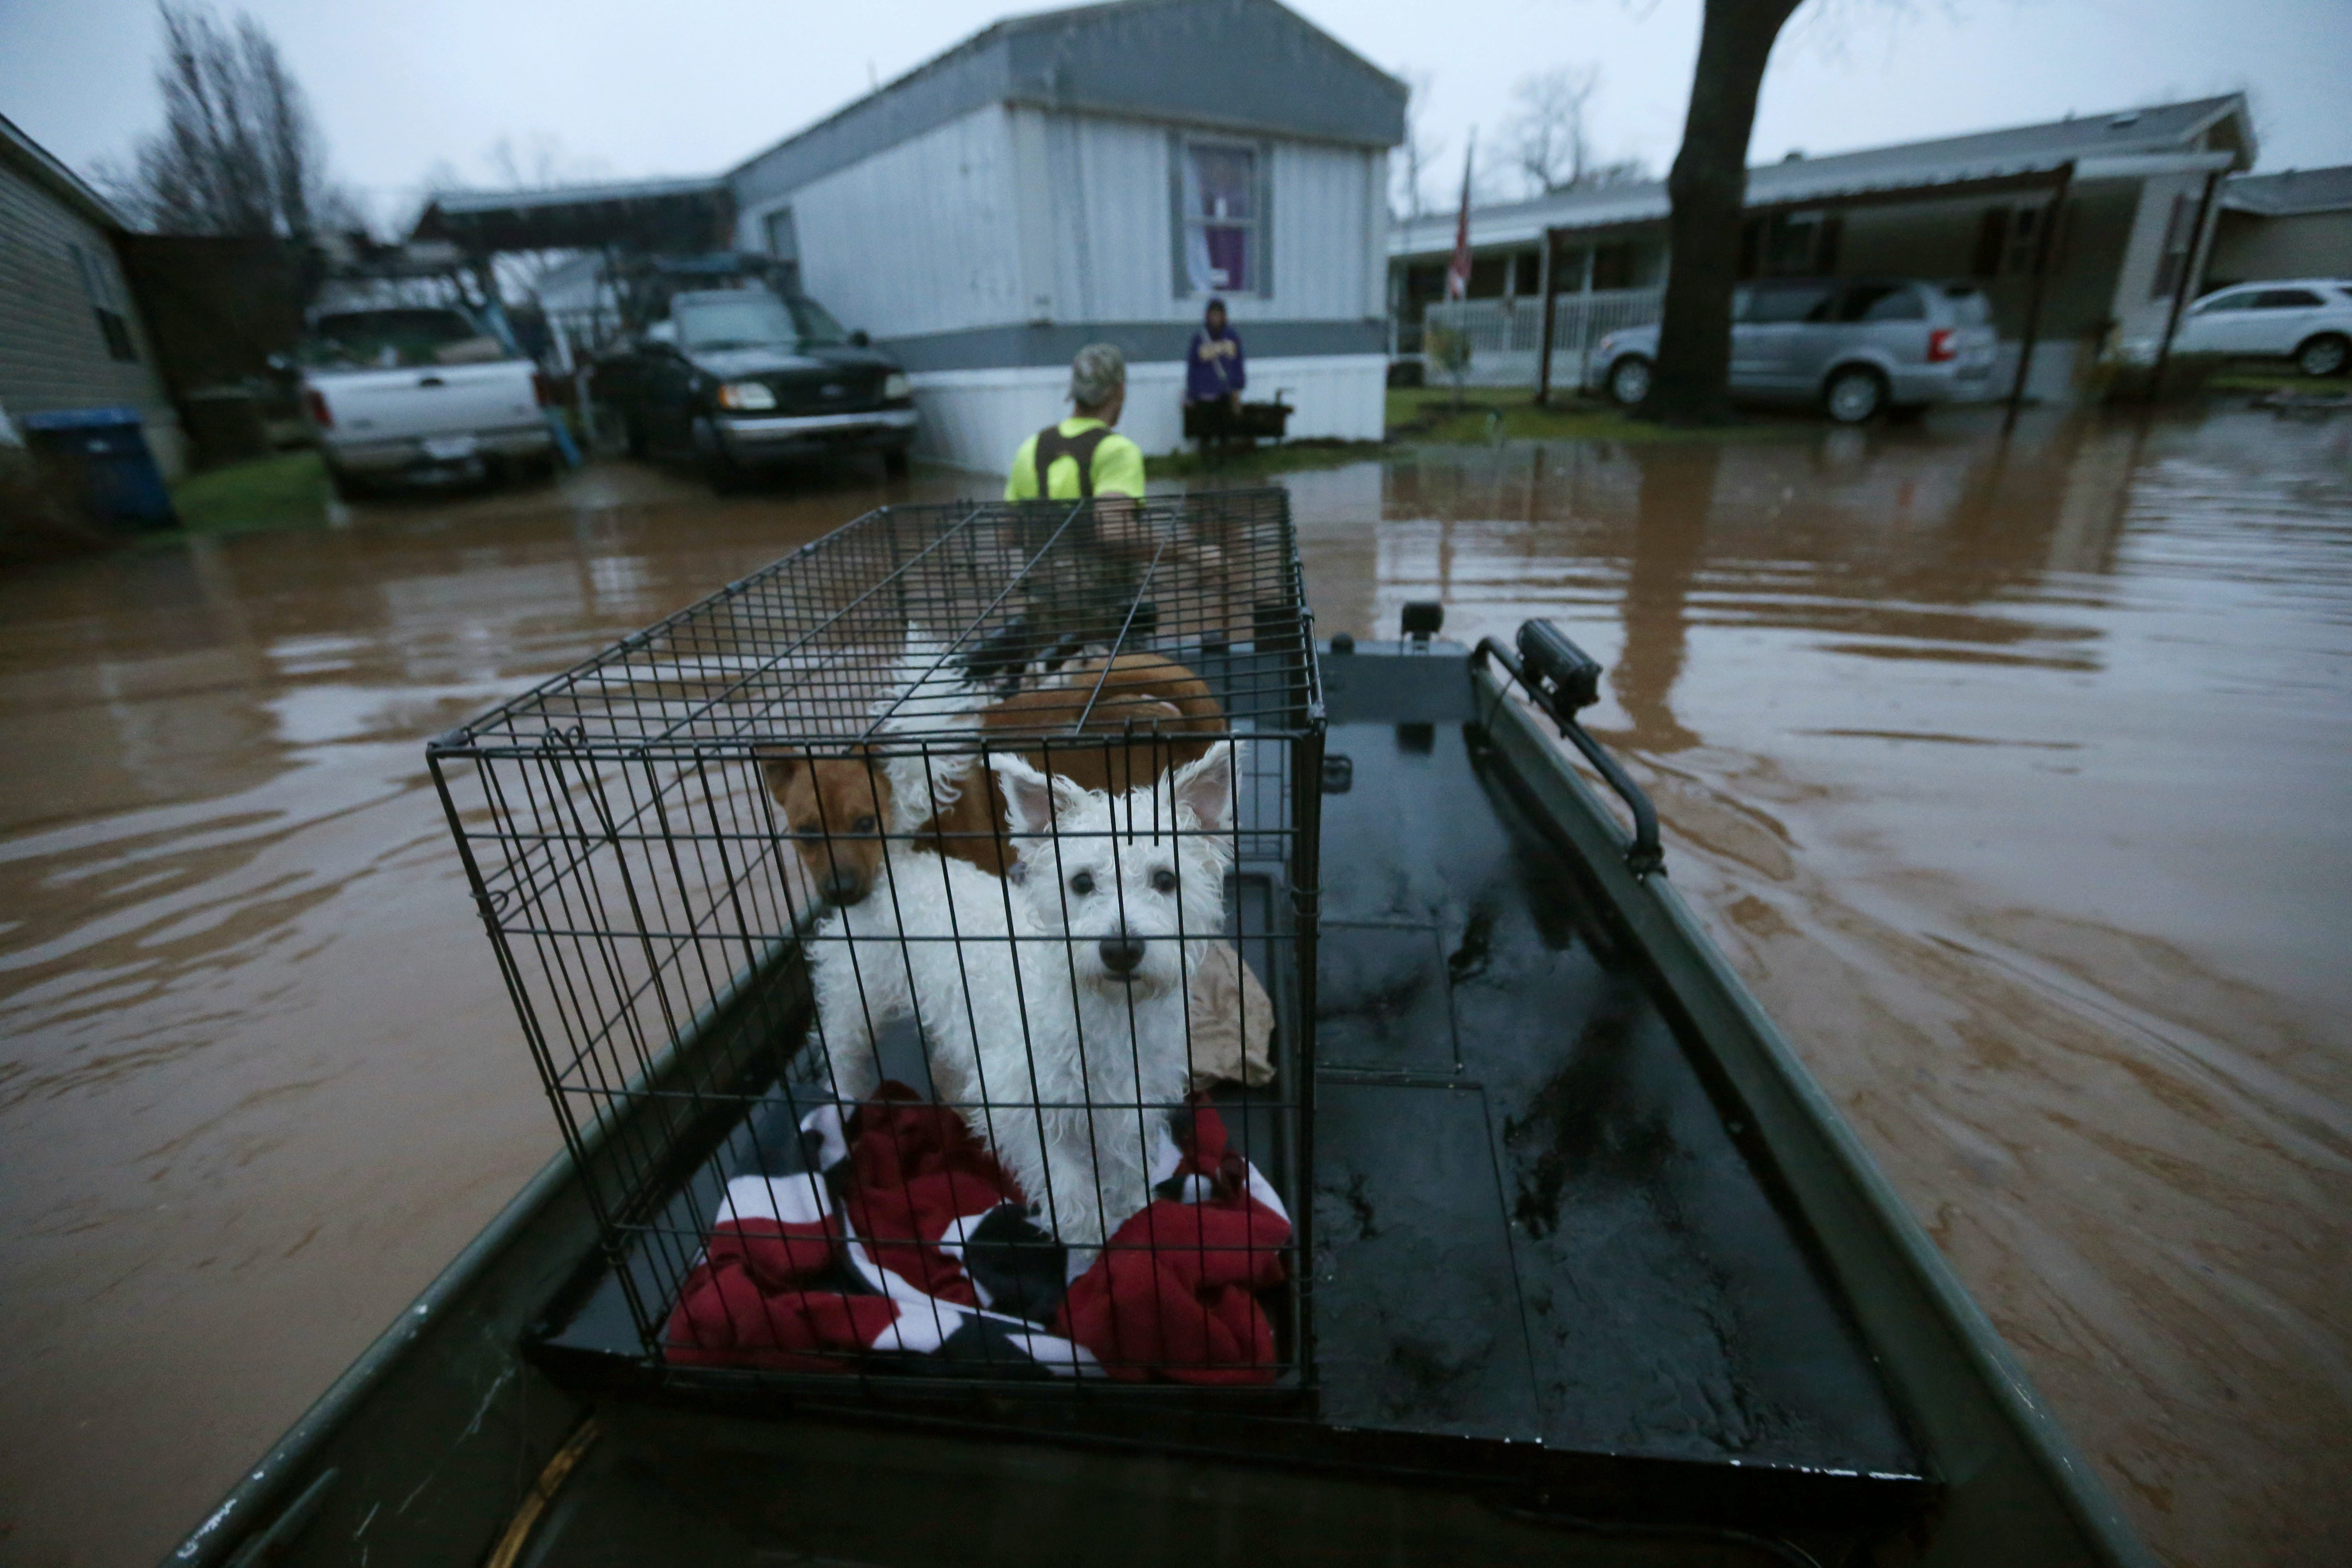 Sam Breen helps his friend retrieve his dogs Edison and Allie from his home, as floodwater rises at the Pecan Valley Estates trailer park in Bossier City, La., March 9, 2016